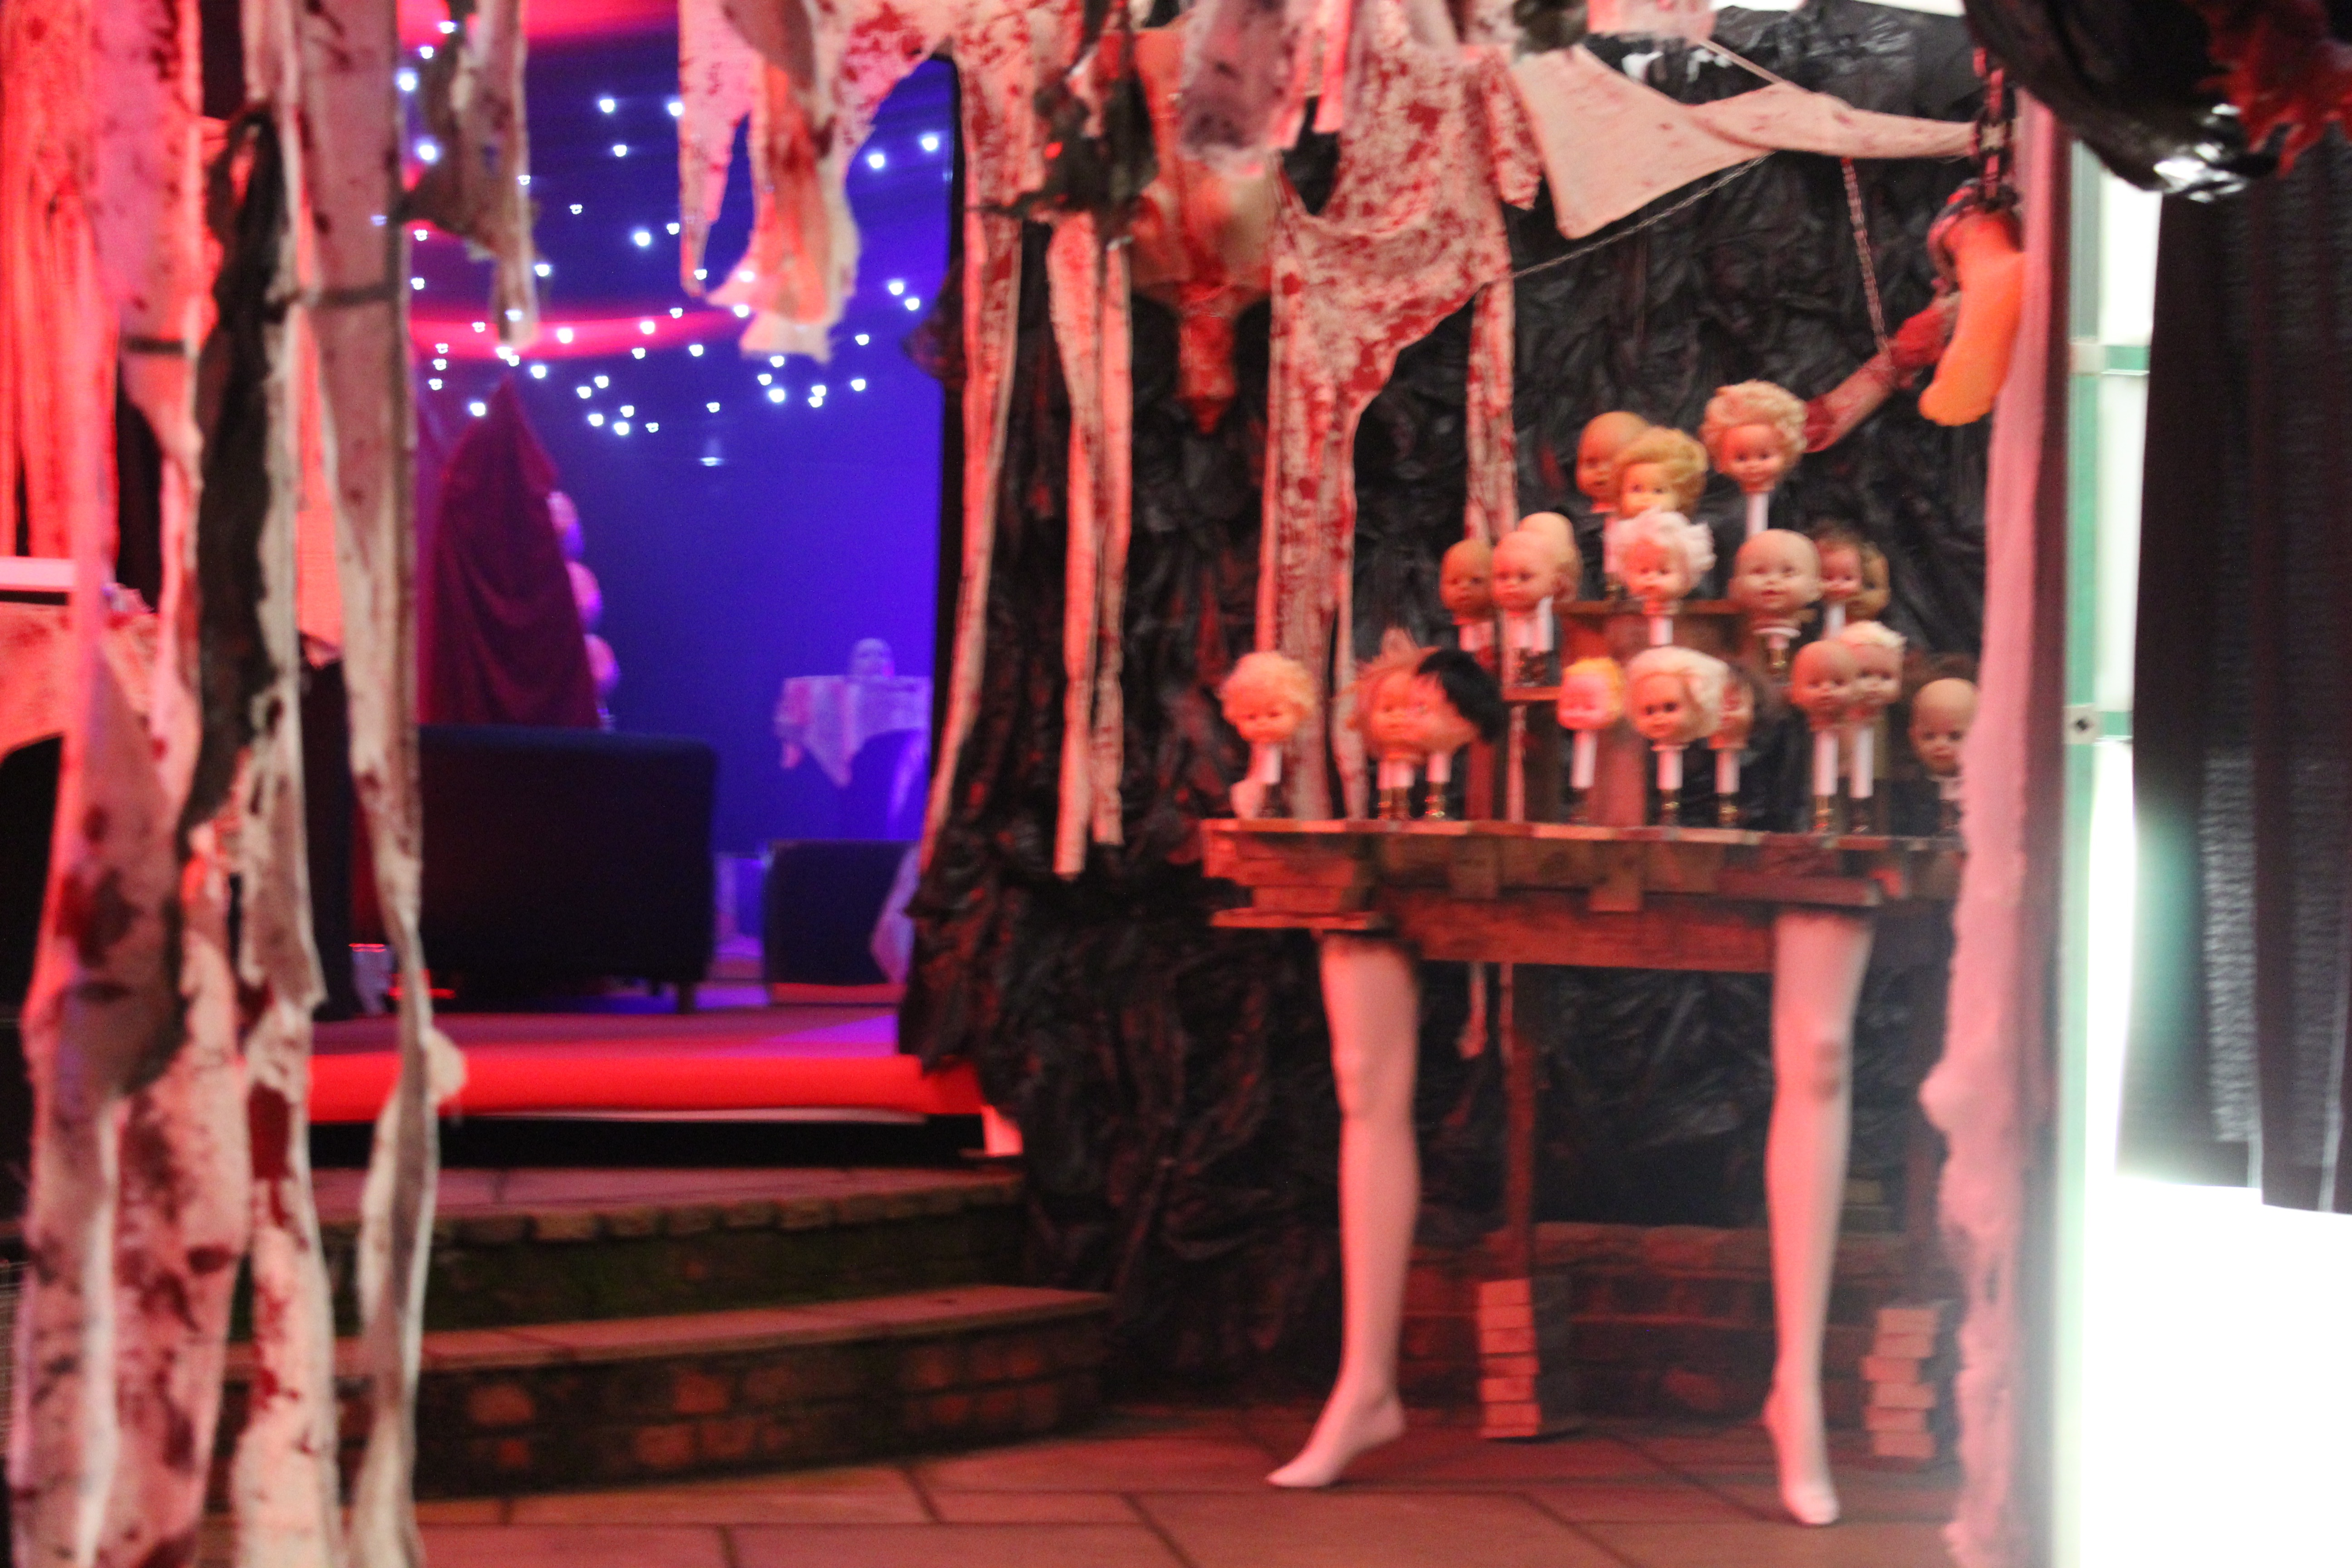 Bespoke Marquee Design for Halloween